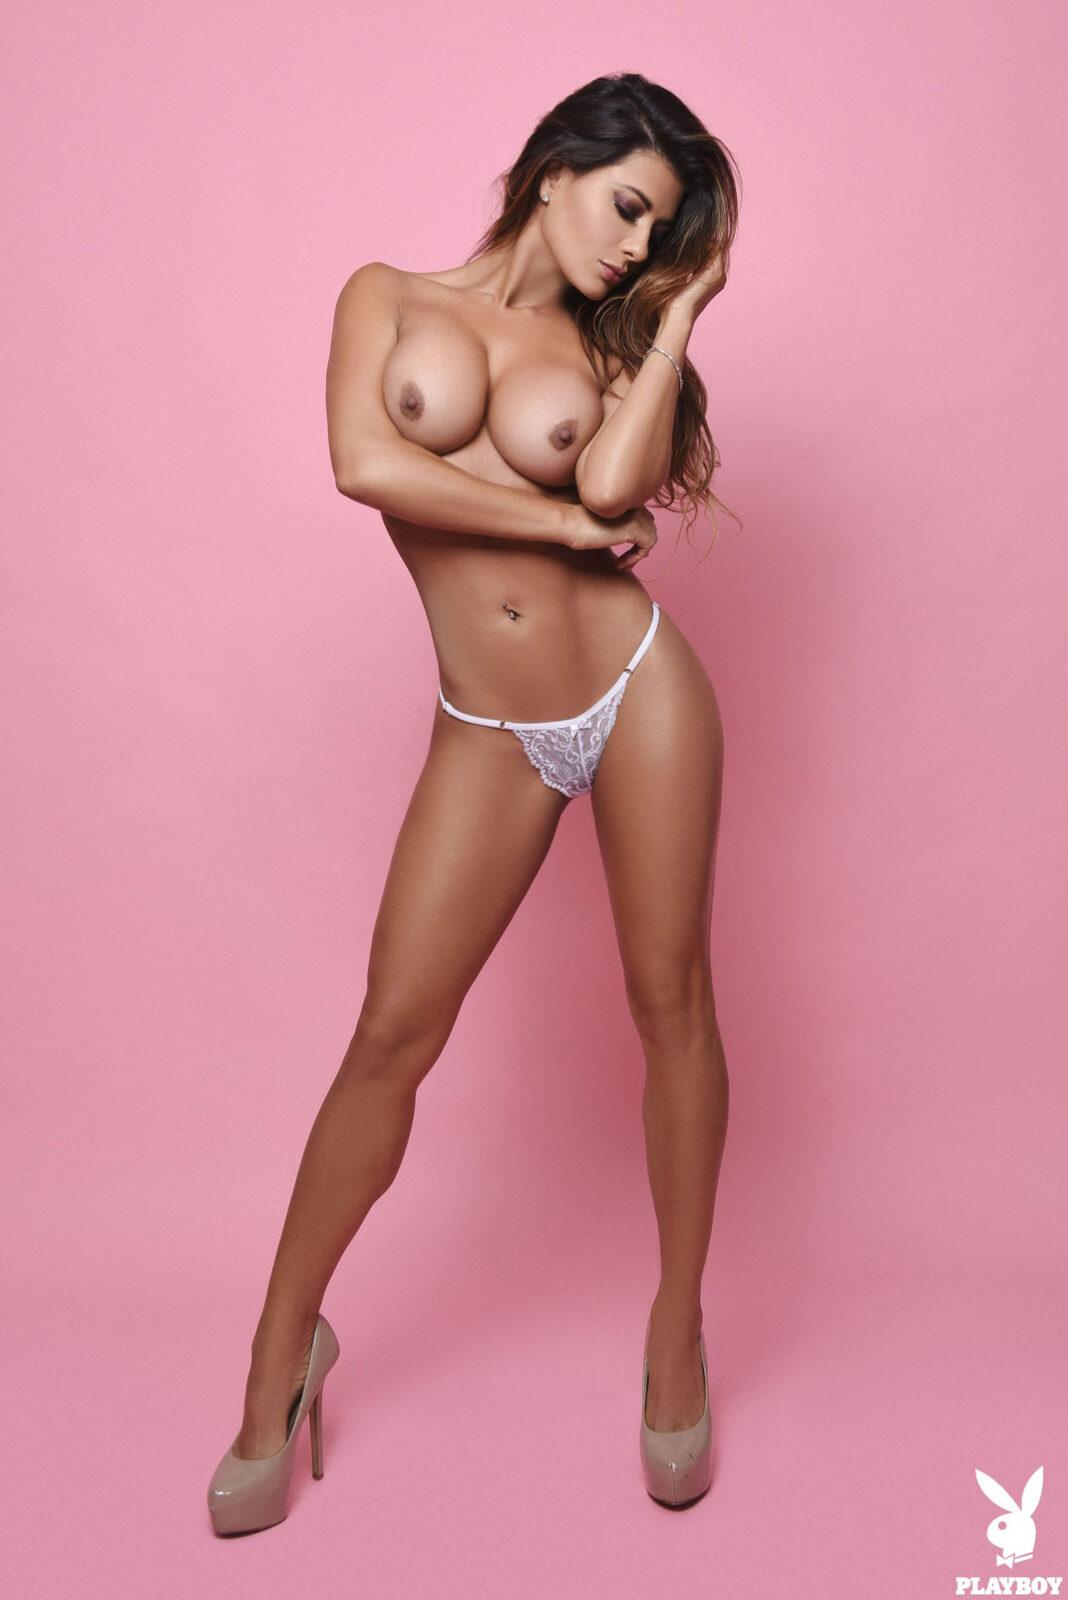 viviana castrillon in playboy mexico3